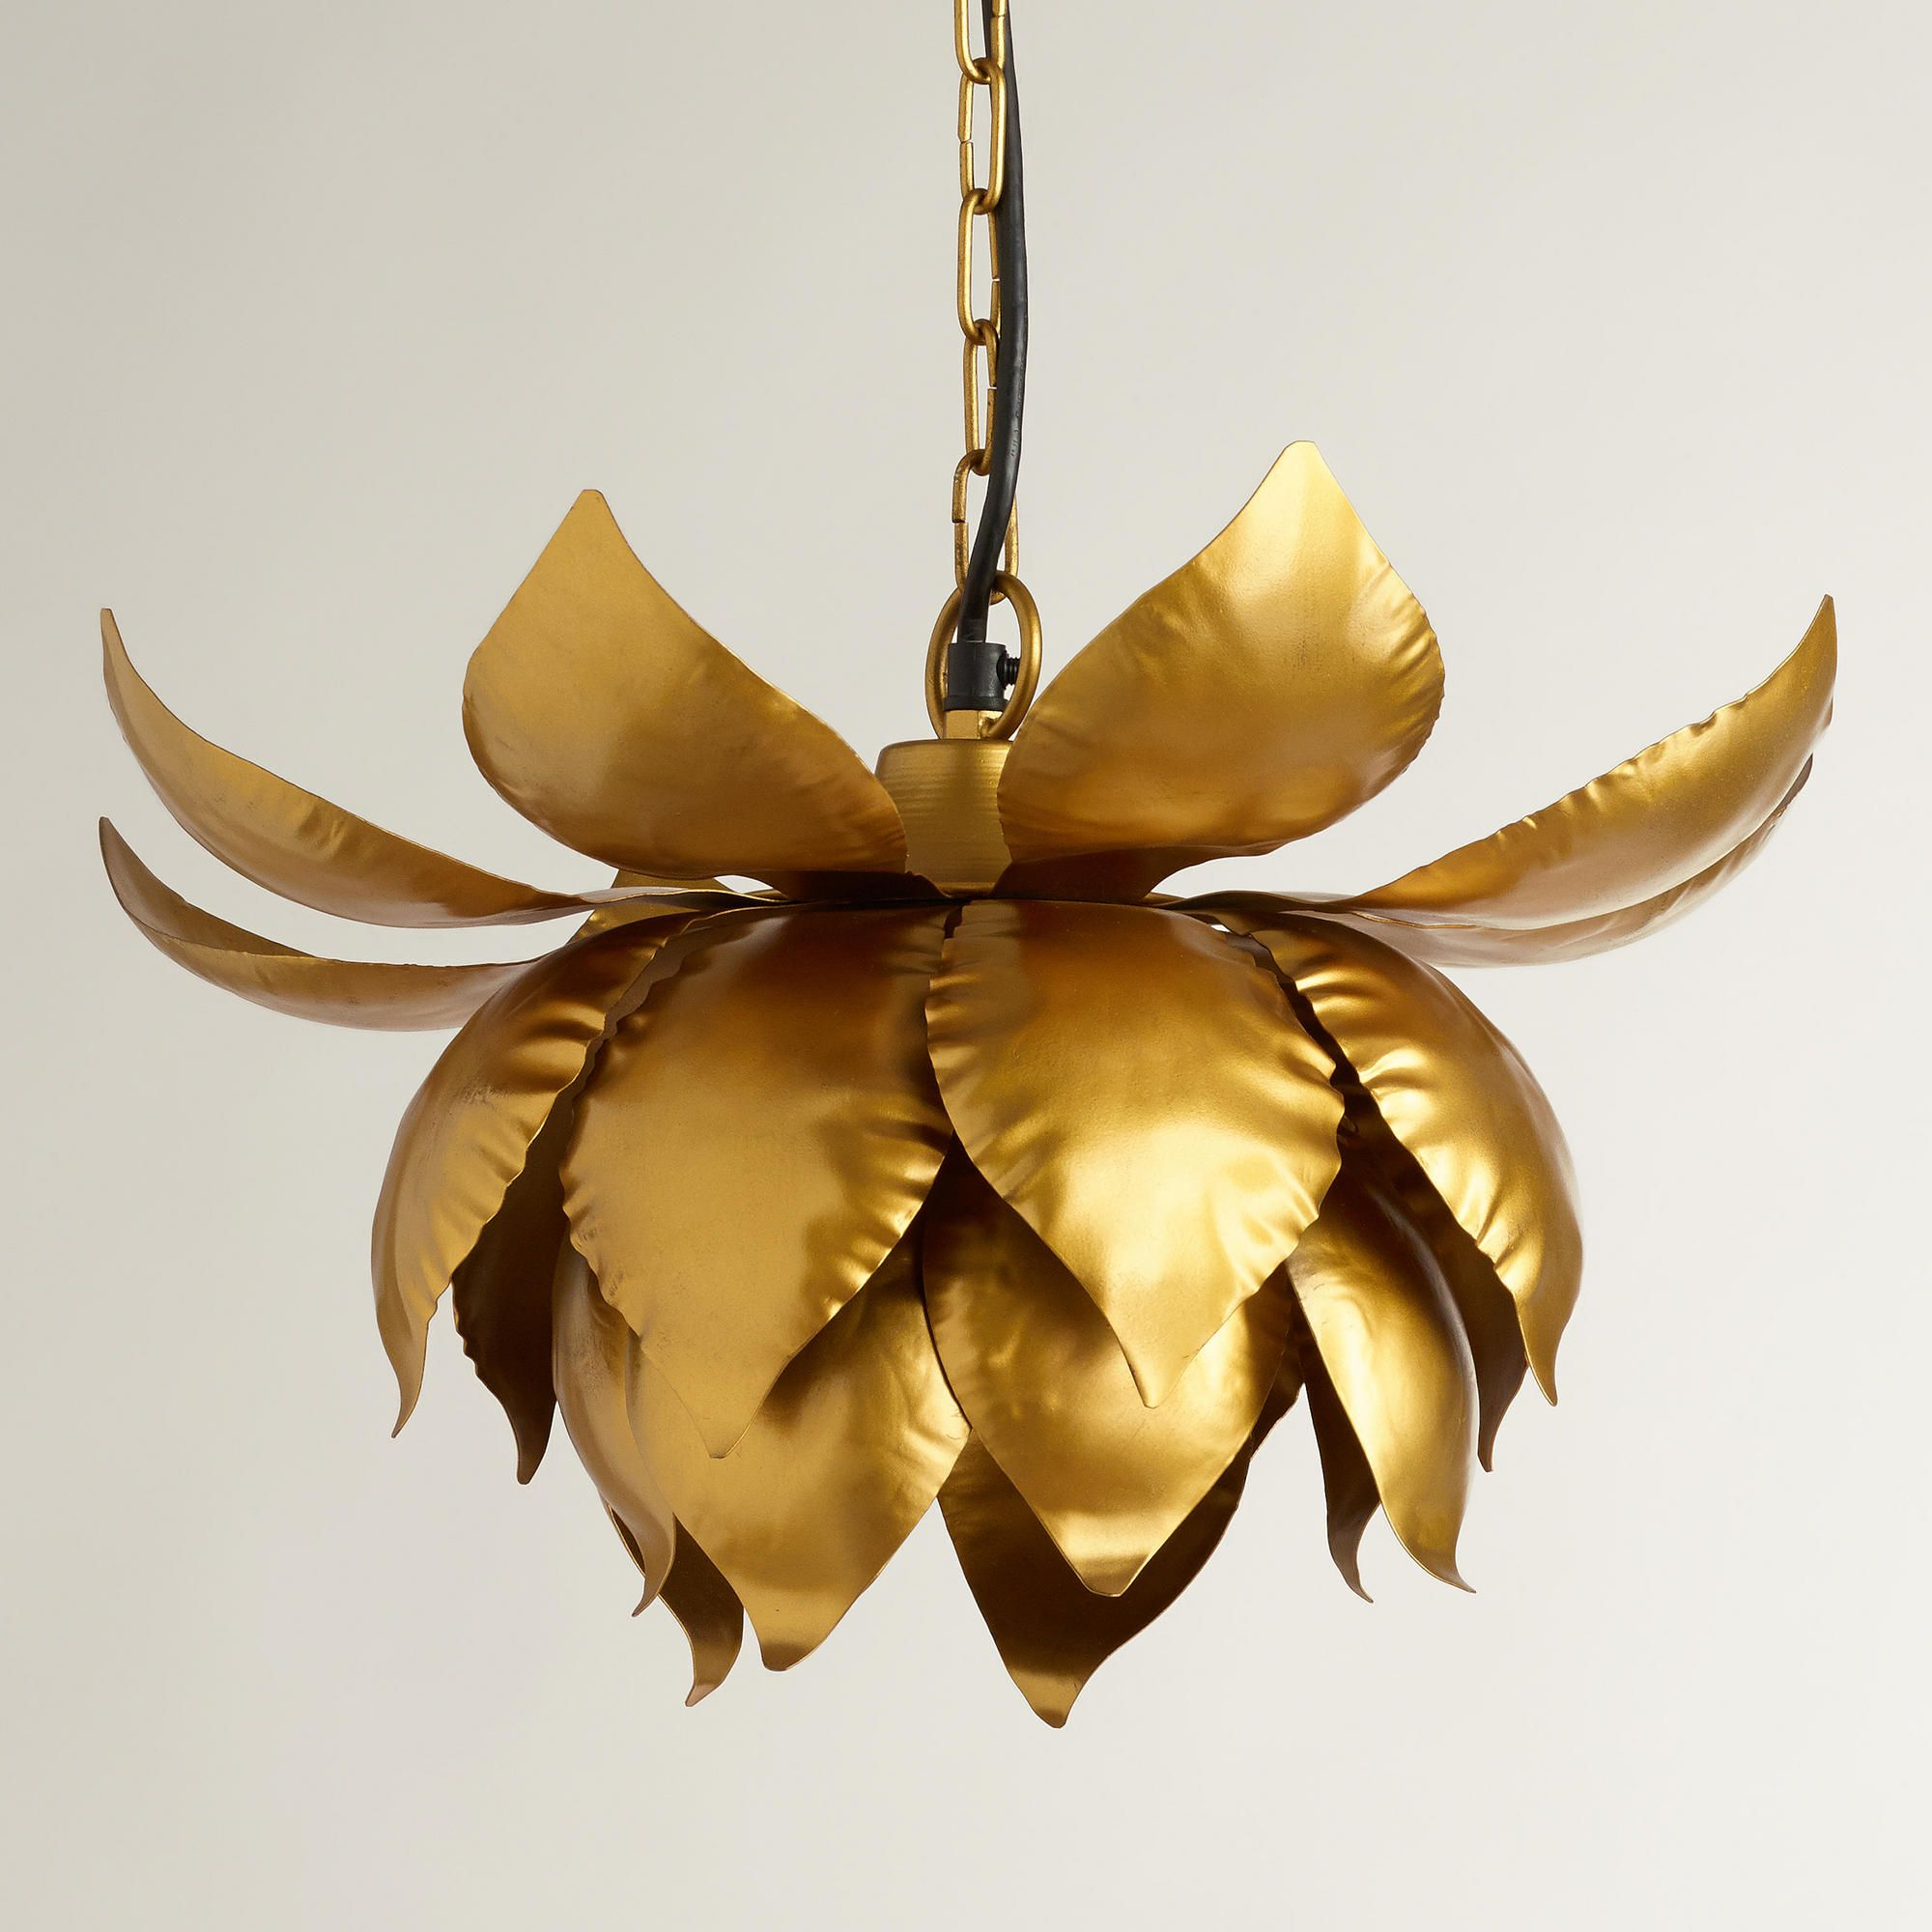 Gold lotus hanging pendant lamp handcrafted in india 7999 on gold lotus hanging pendant lamp handcrafted in india 7999 on sale 8 audiocablefo light catalogue